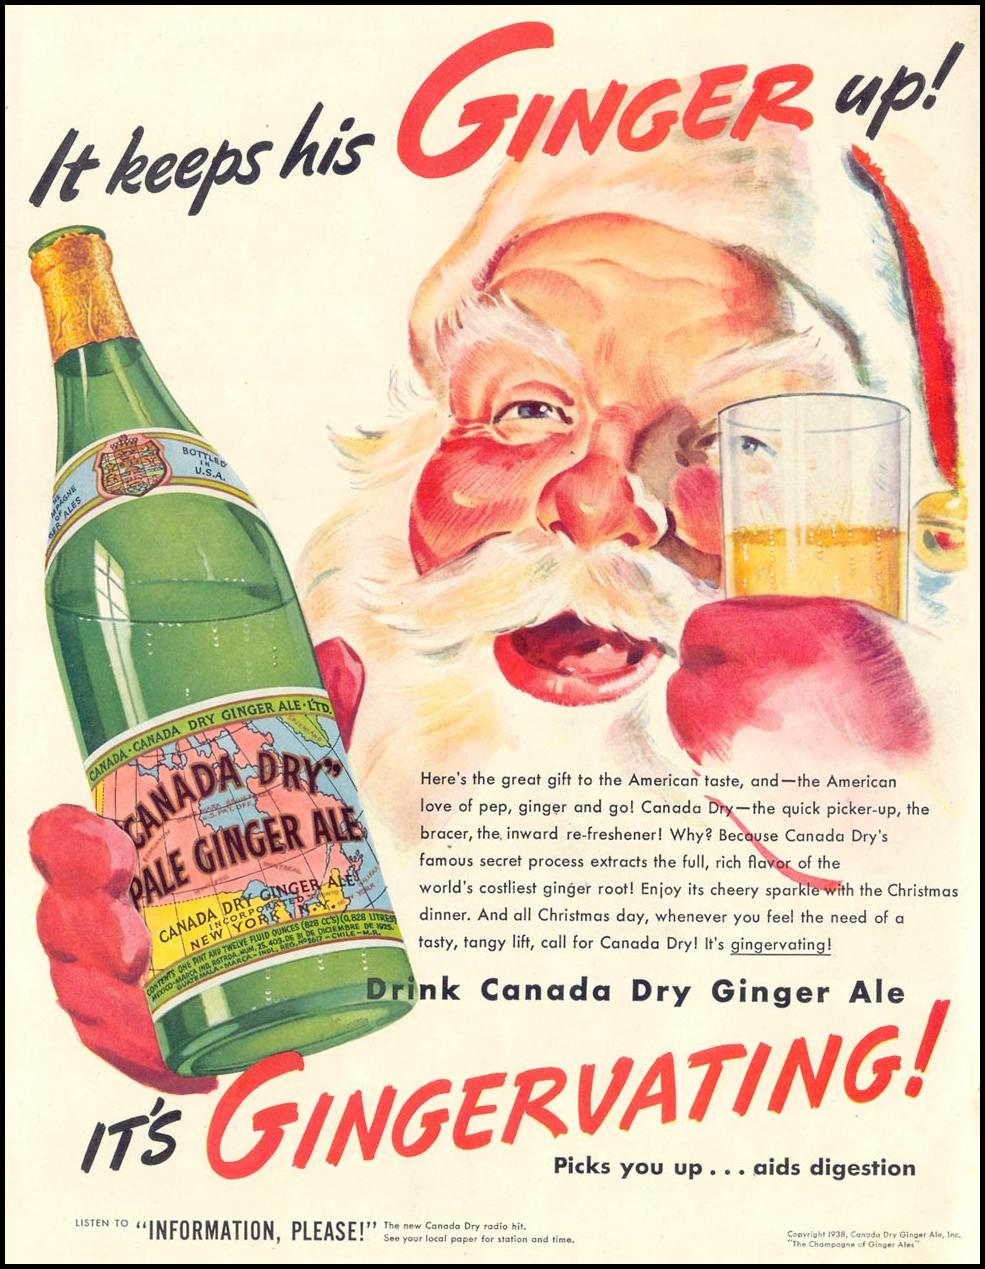 CANADA DRY GINGER ALE LIFE 12/12/1938